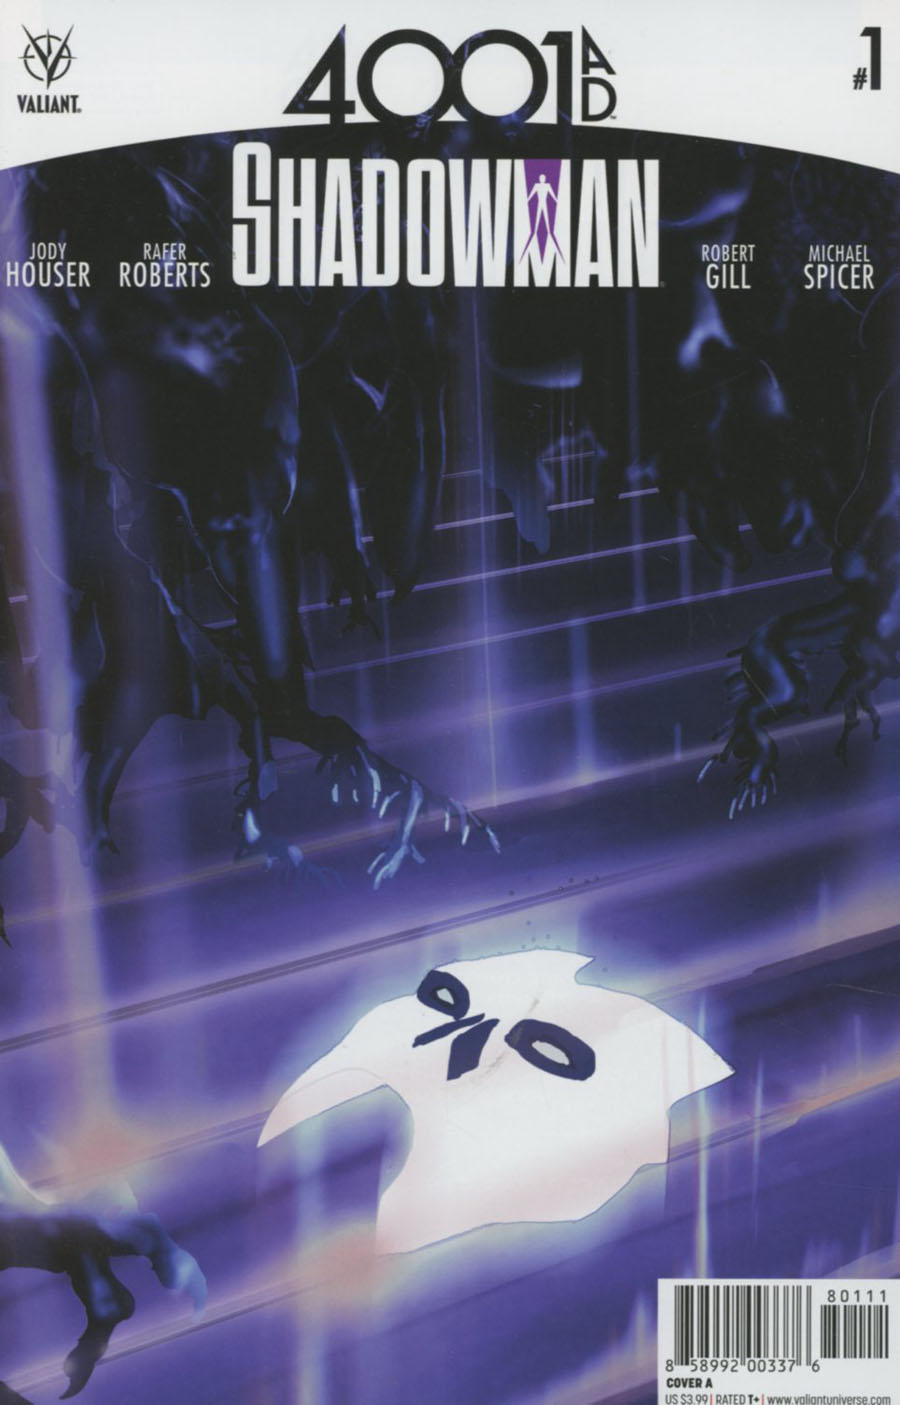 4001 AD Shadowman #1 Cover A Regular Travel Foreman Cover